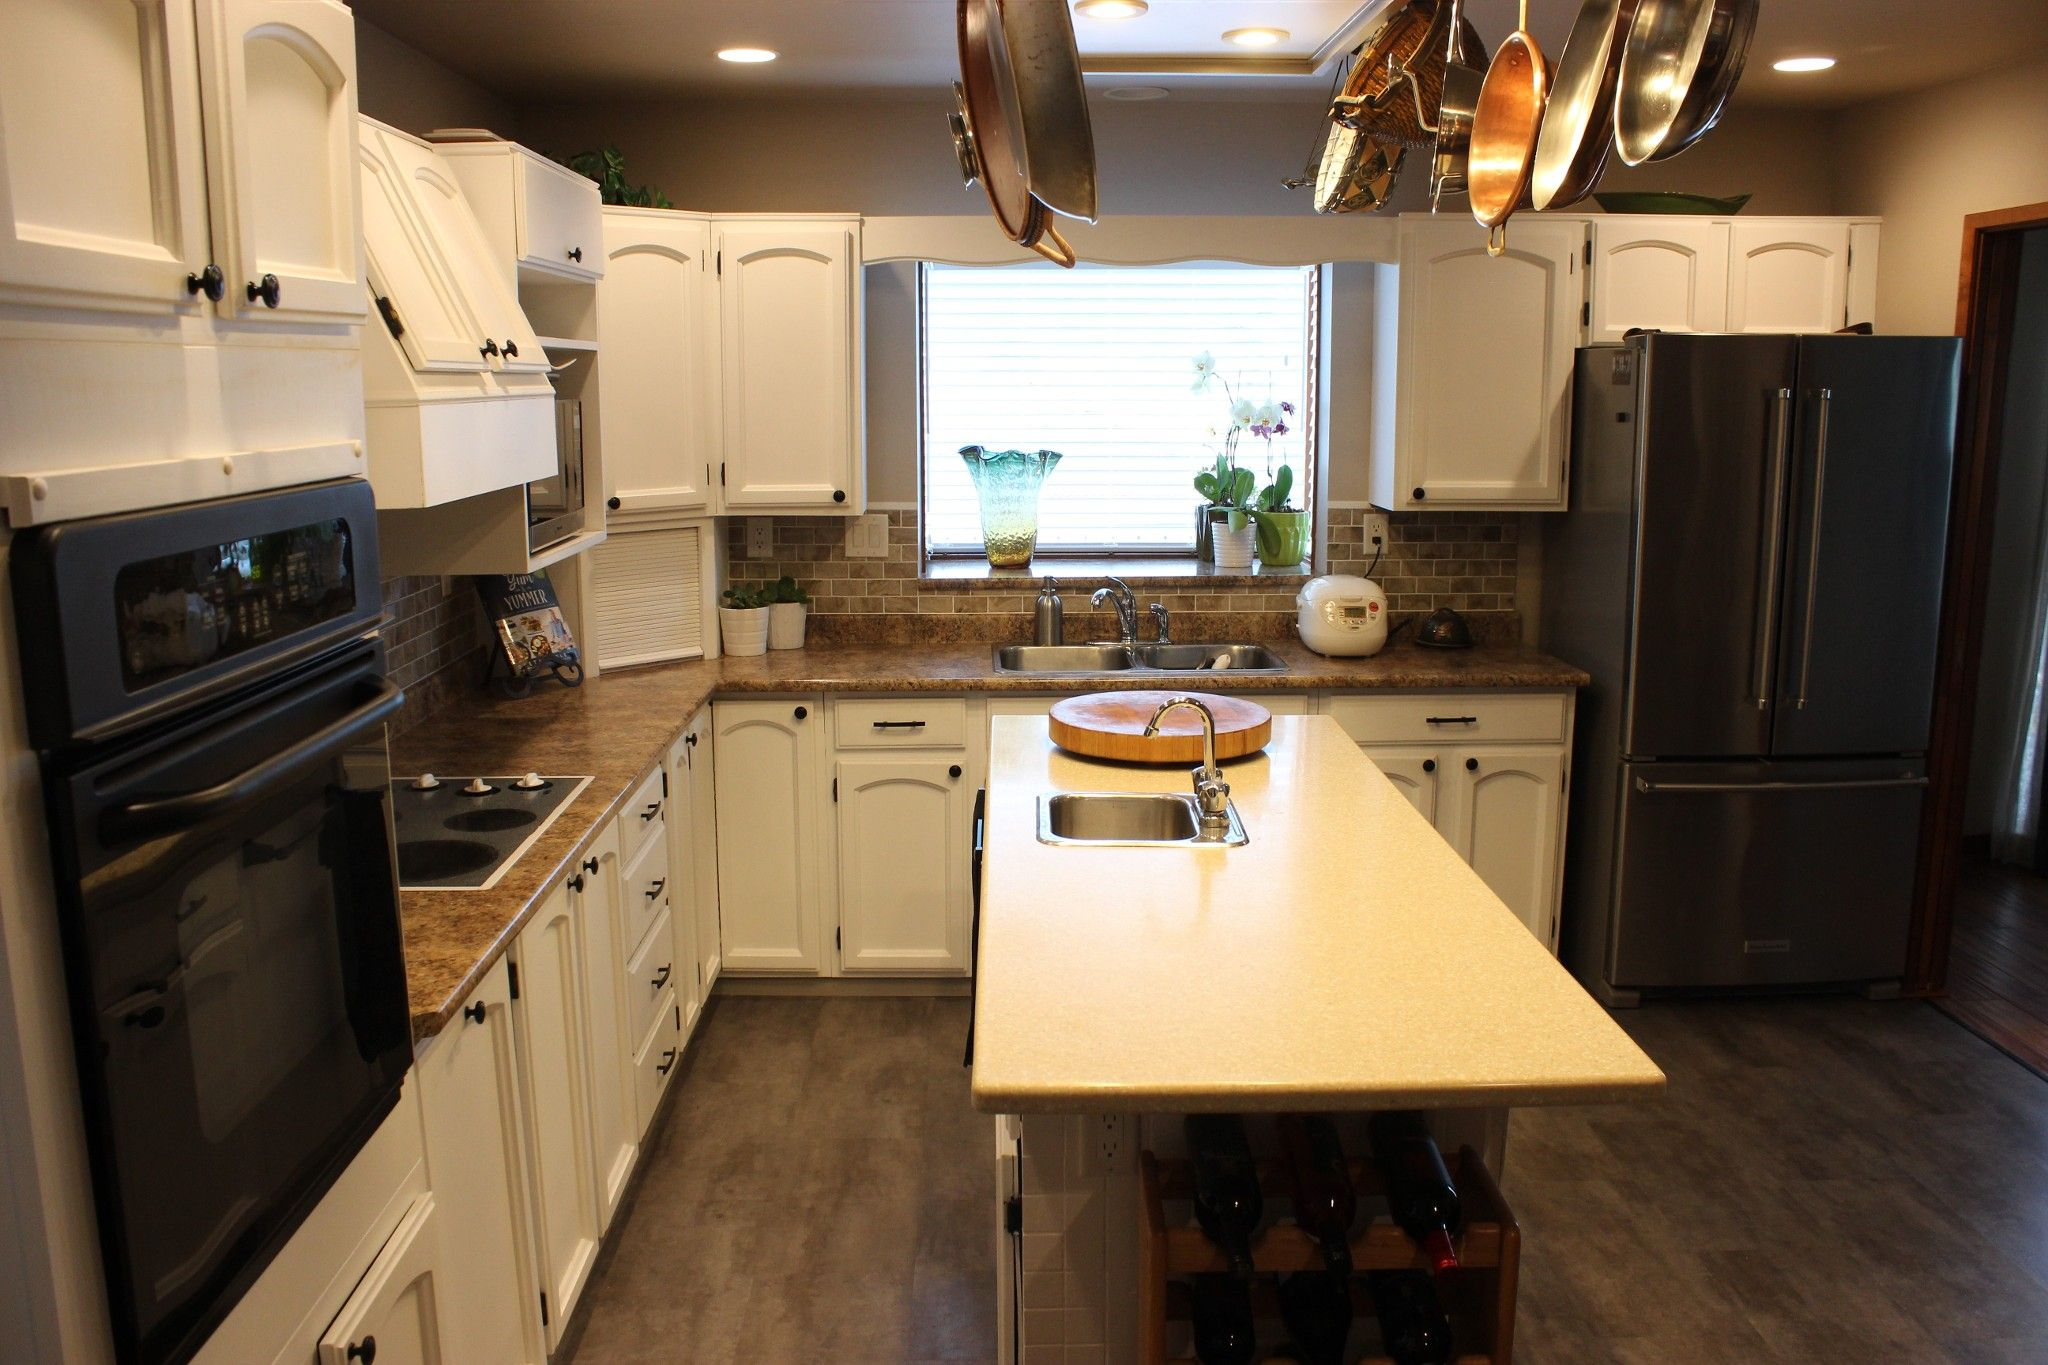 Photo 8: Photos: 3461 Navatanee Drive in Kamloops: South Thompson Valley House for sale : MLS®# 150033